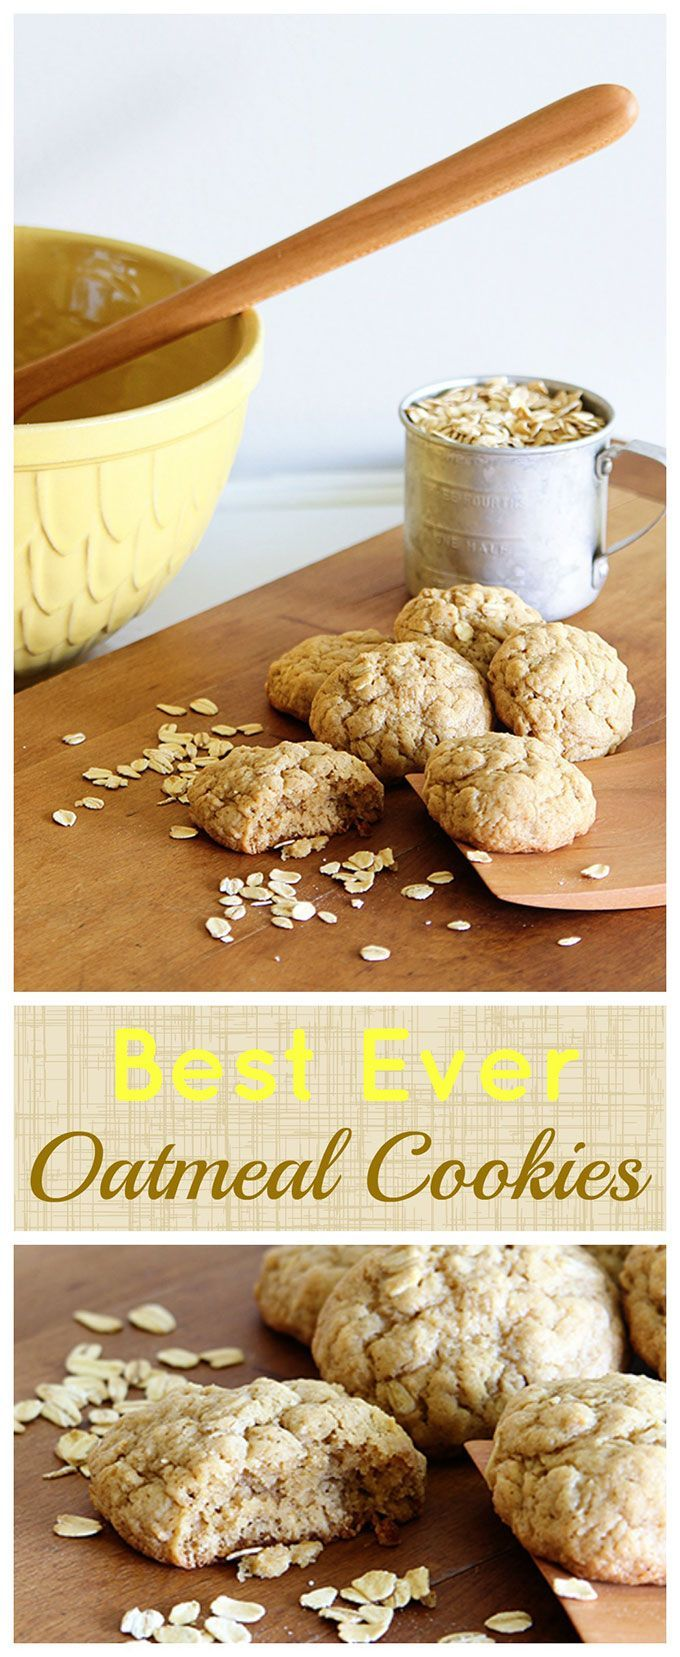 This is the best recipe for soft and chewy oatmeal cookies! Super easy to make and no electric mixers involved, so kids can help make them too.